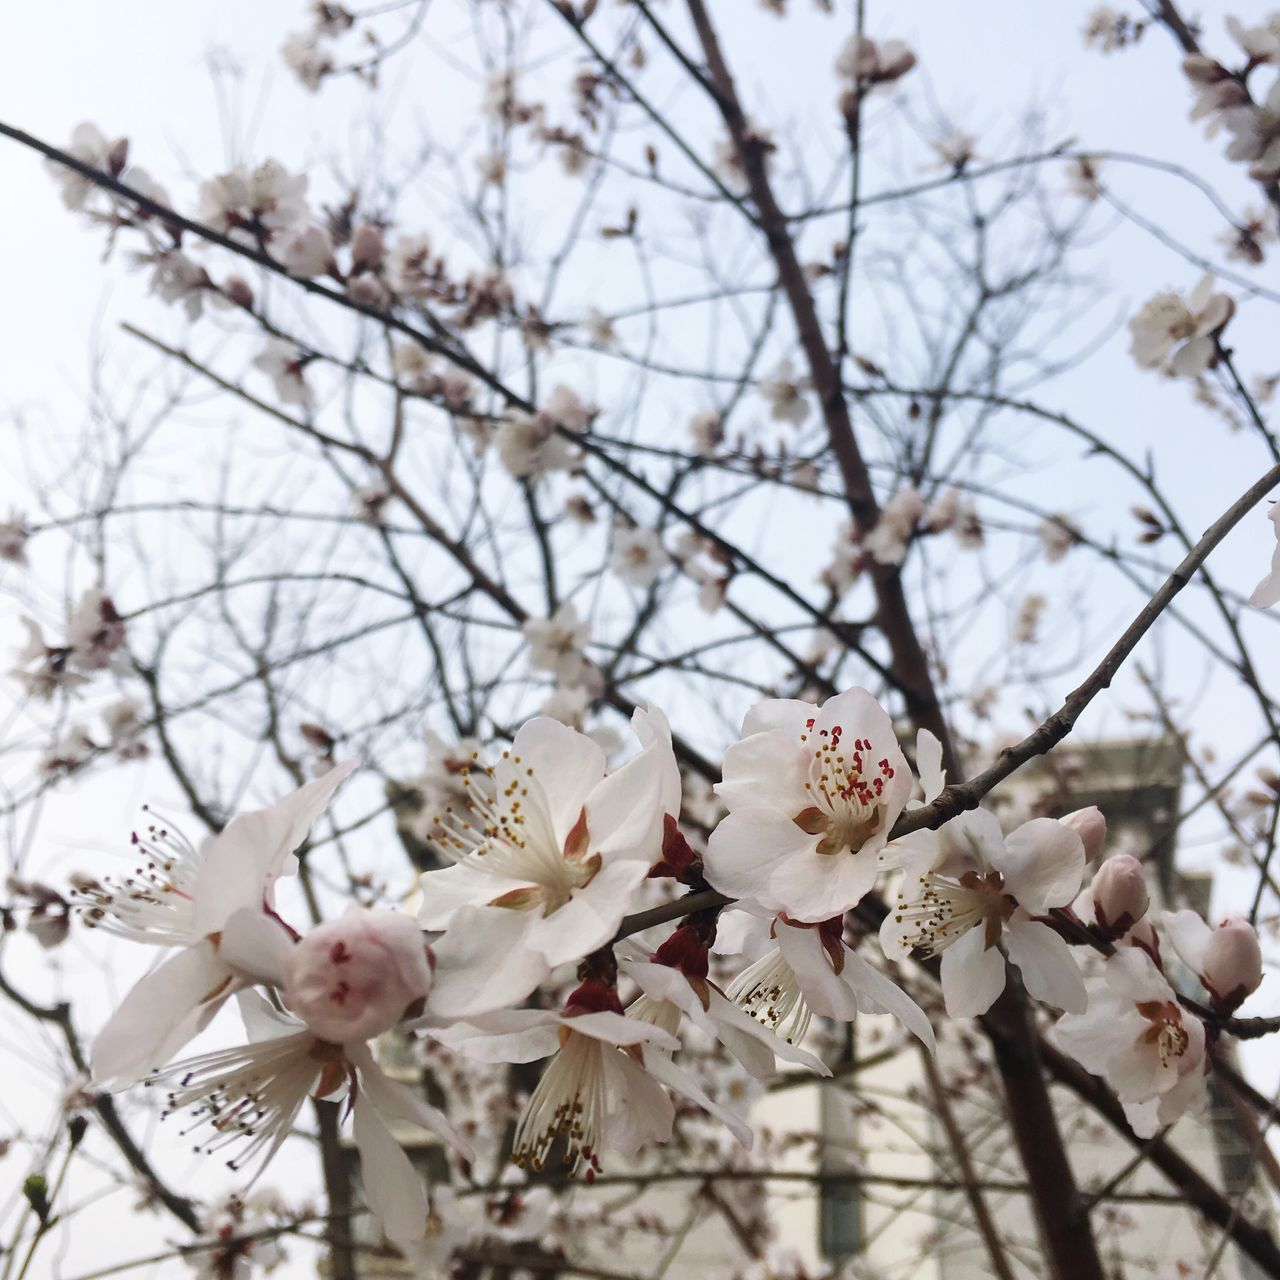 flower, tree, fragility, blossom, beauty in nature, cherry blossom, branch, growth, springtime, nature, apple blossom, petal, freshness, apple tree, botany, cherry tree, orchard, white color, magnolia, twig, flower head, no people, blooming, day, plum blossom, selective focus, low angle view, spring, stamen, close-up, pink color, outdoors, sky